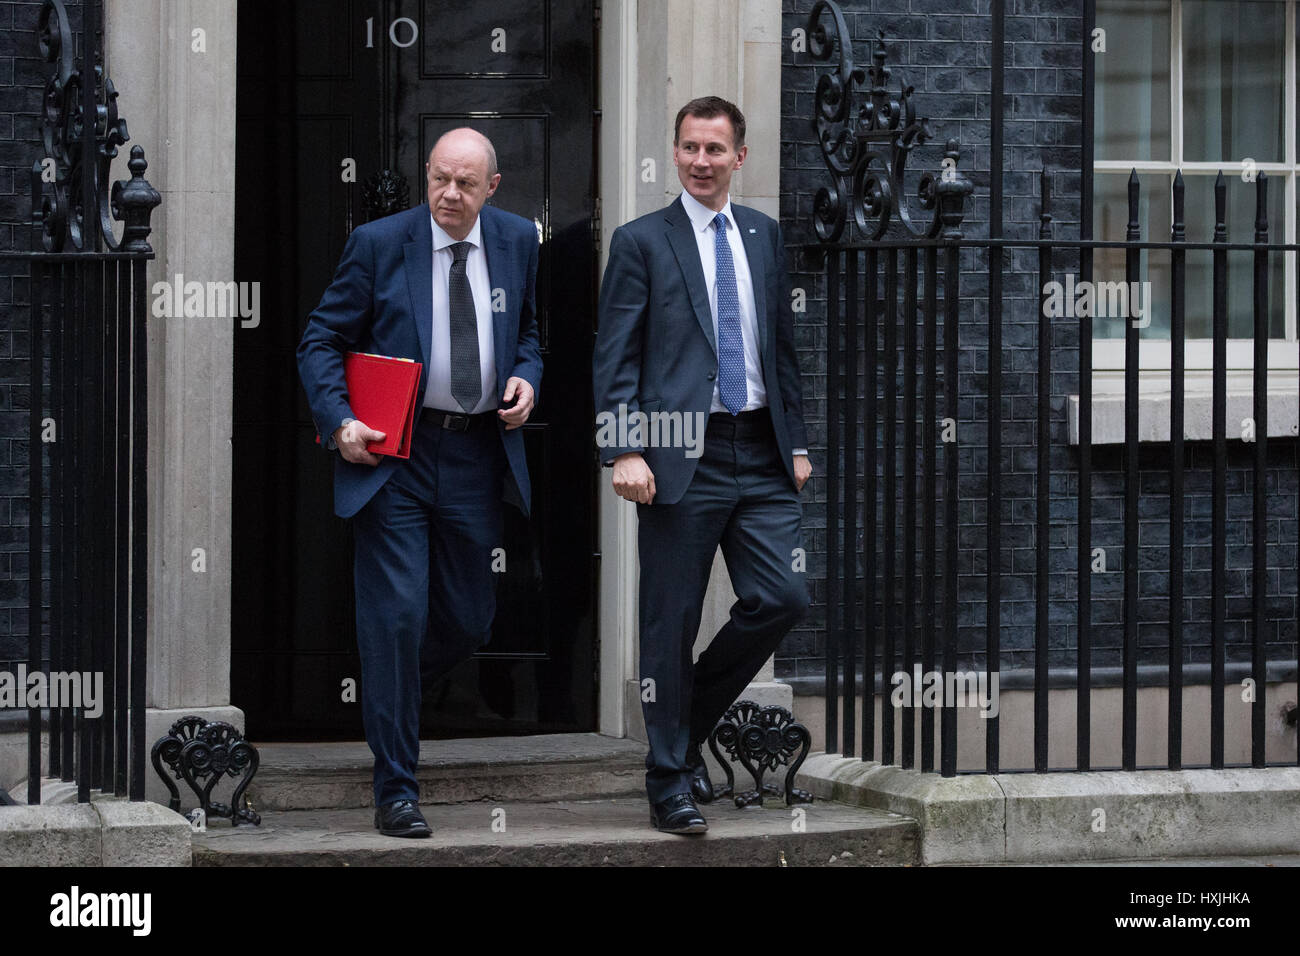 London, UK. 29th Mar, 2017. Jeremy Hunt MP, Secretary of State for Health, and Damian Green MP, Secretary of State - Stock Image